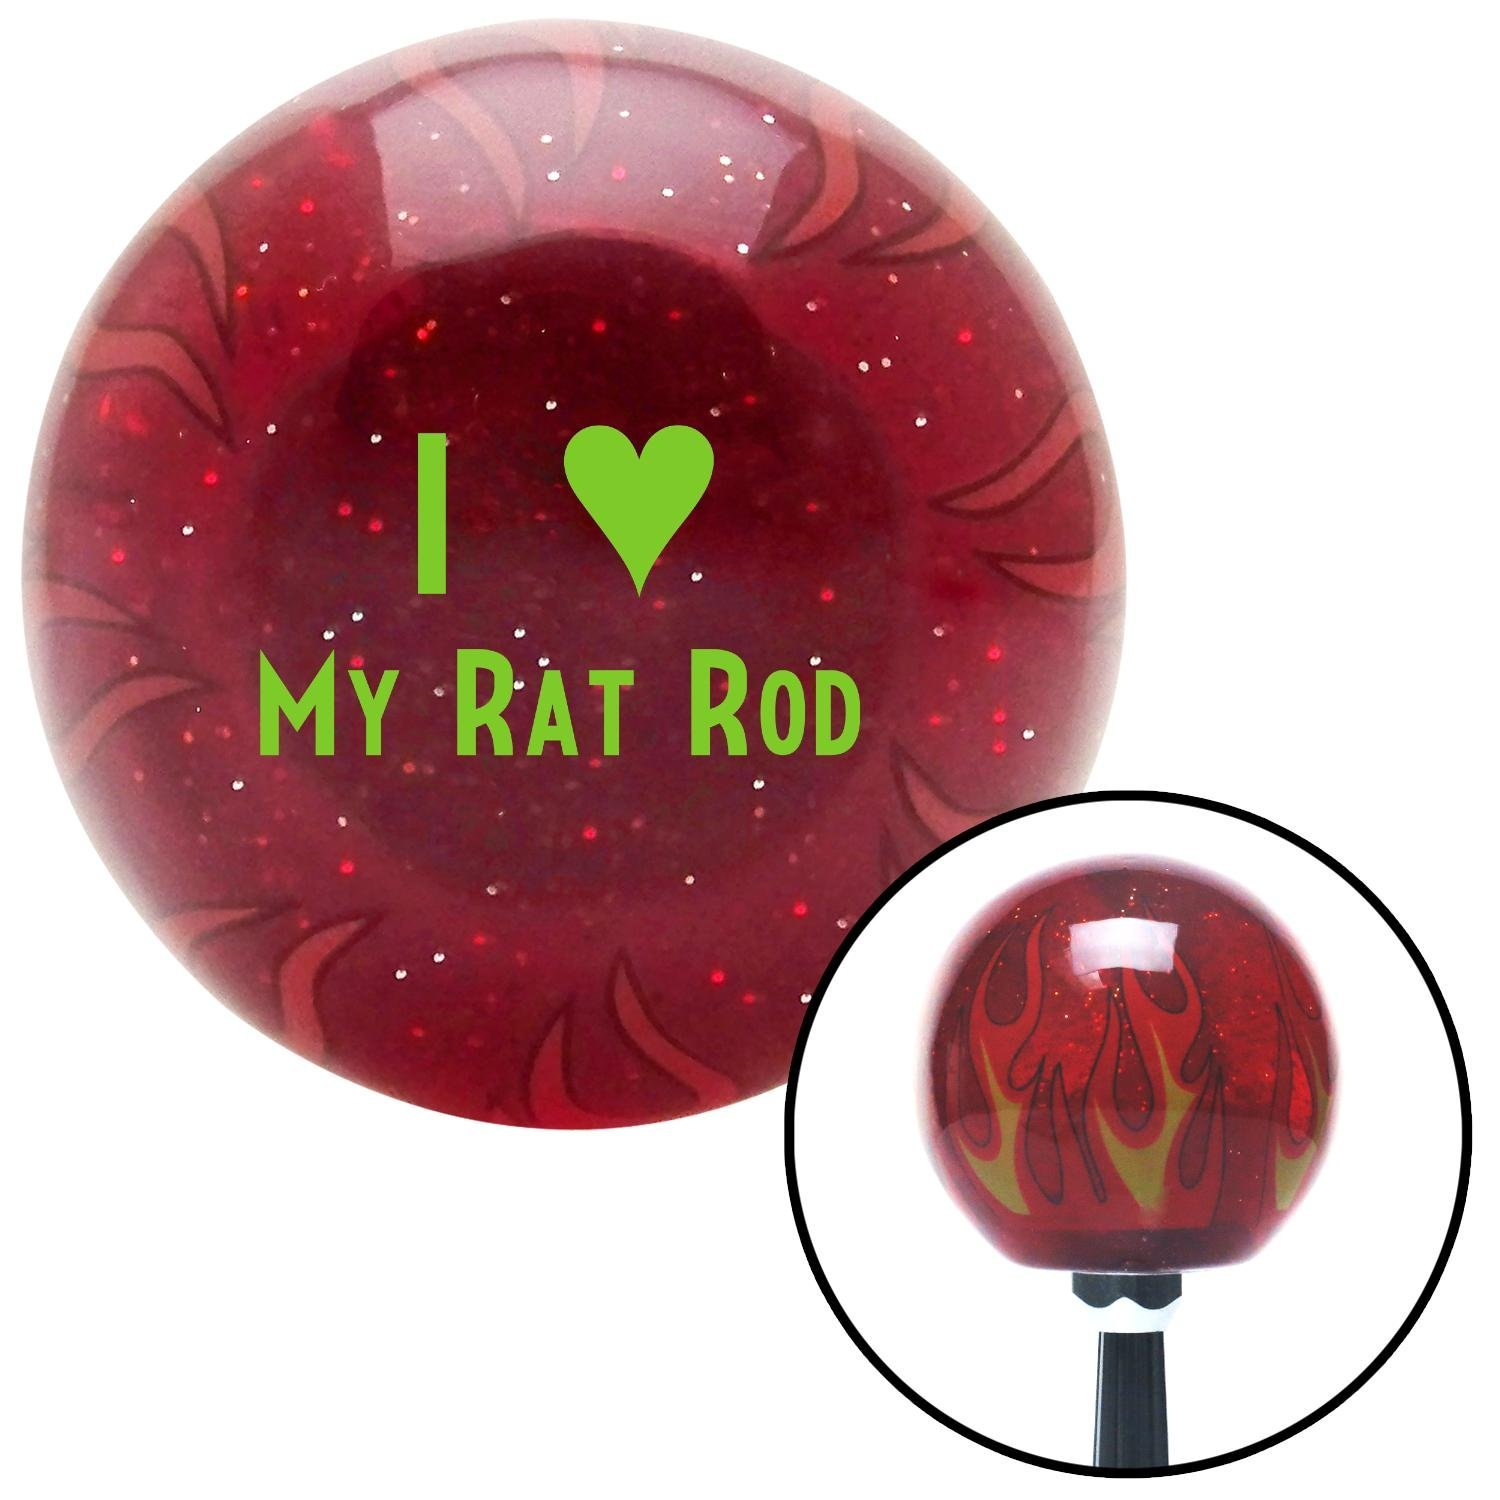 American Shifter 237426 Red Flame Metal Flake Shift Knob with M16 x 1.5 Insert Green I 3 My Rat Rod